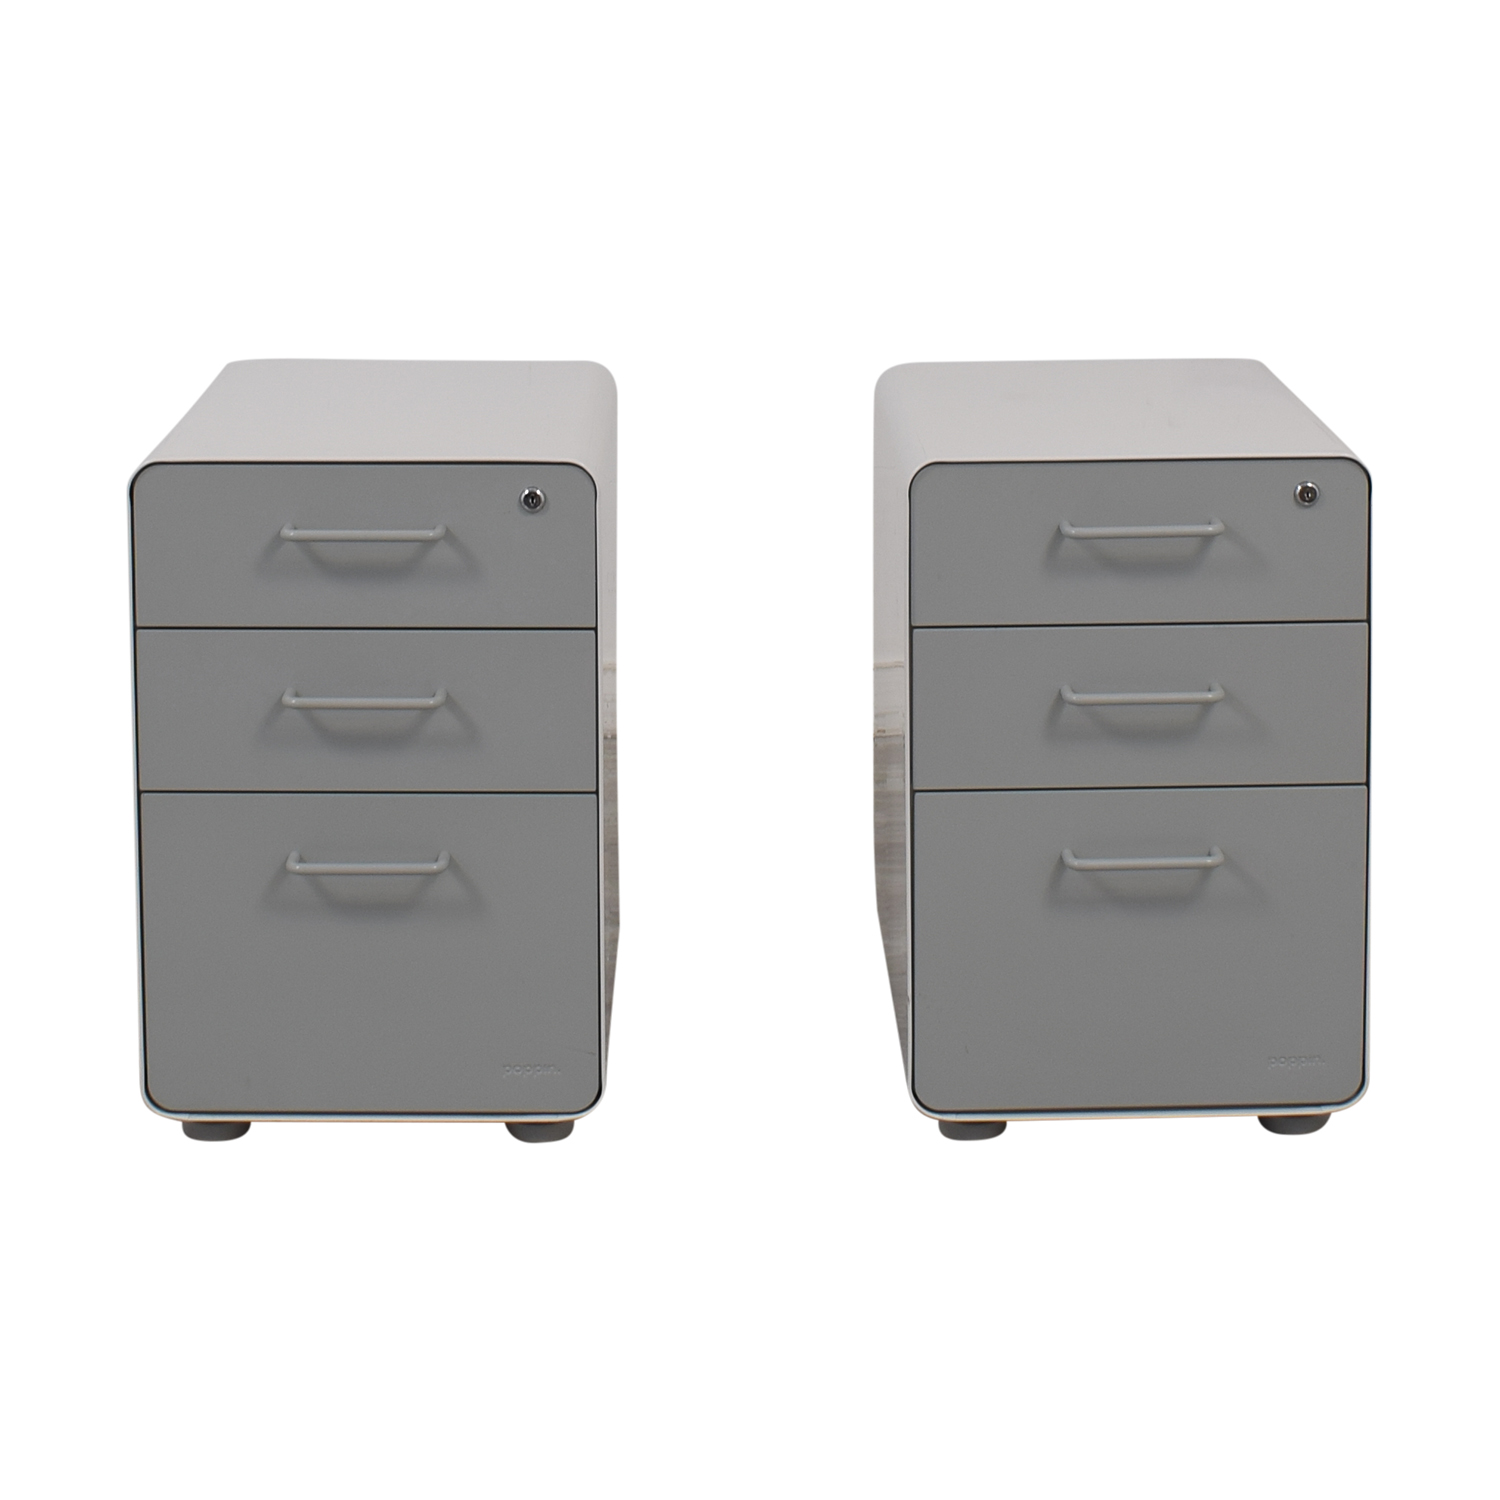 Poppin Poppin White and Grey Rolling Three-Drawer File Cabinets price